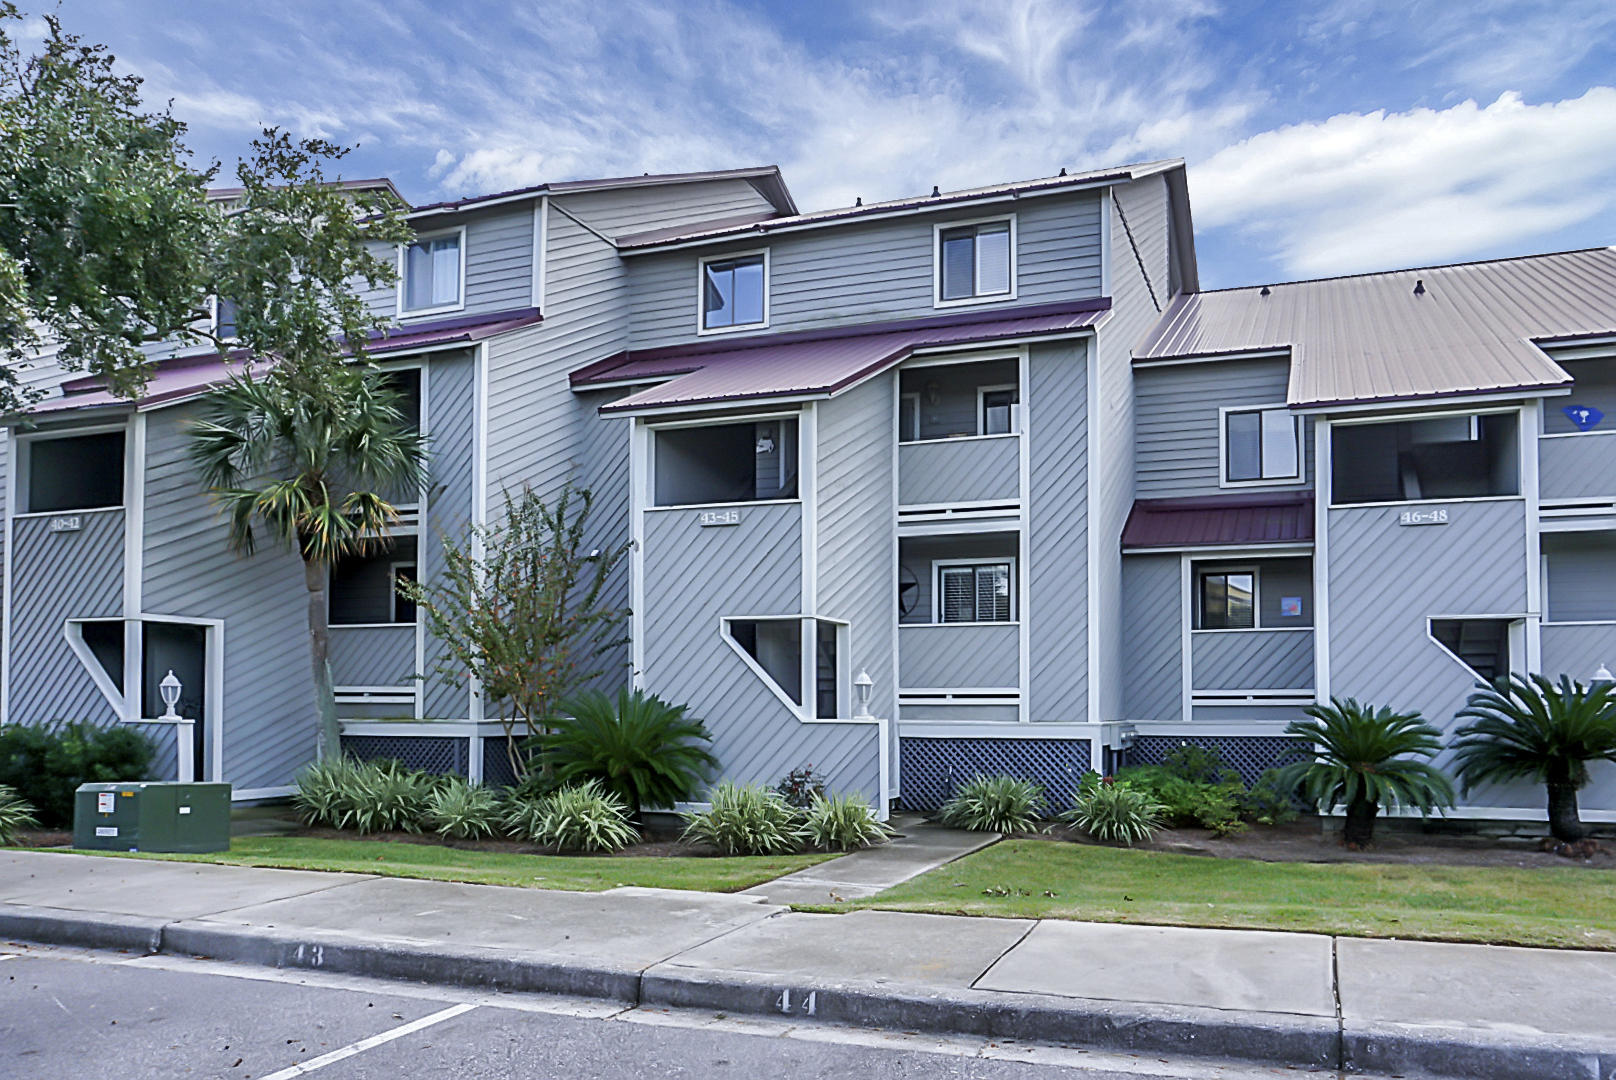 Mariners Cay Homes For Sale - 45 Mariners Cay, Folly Beach, SC - 63